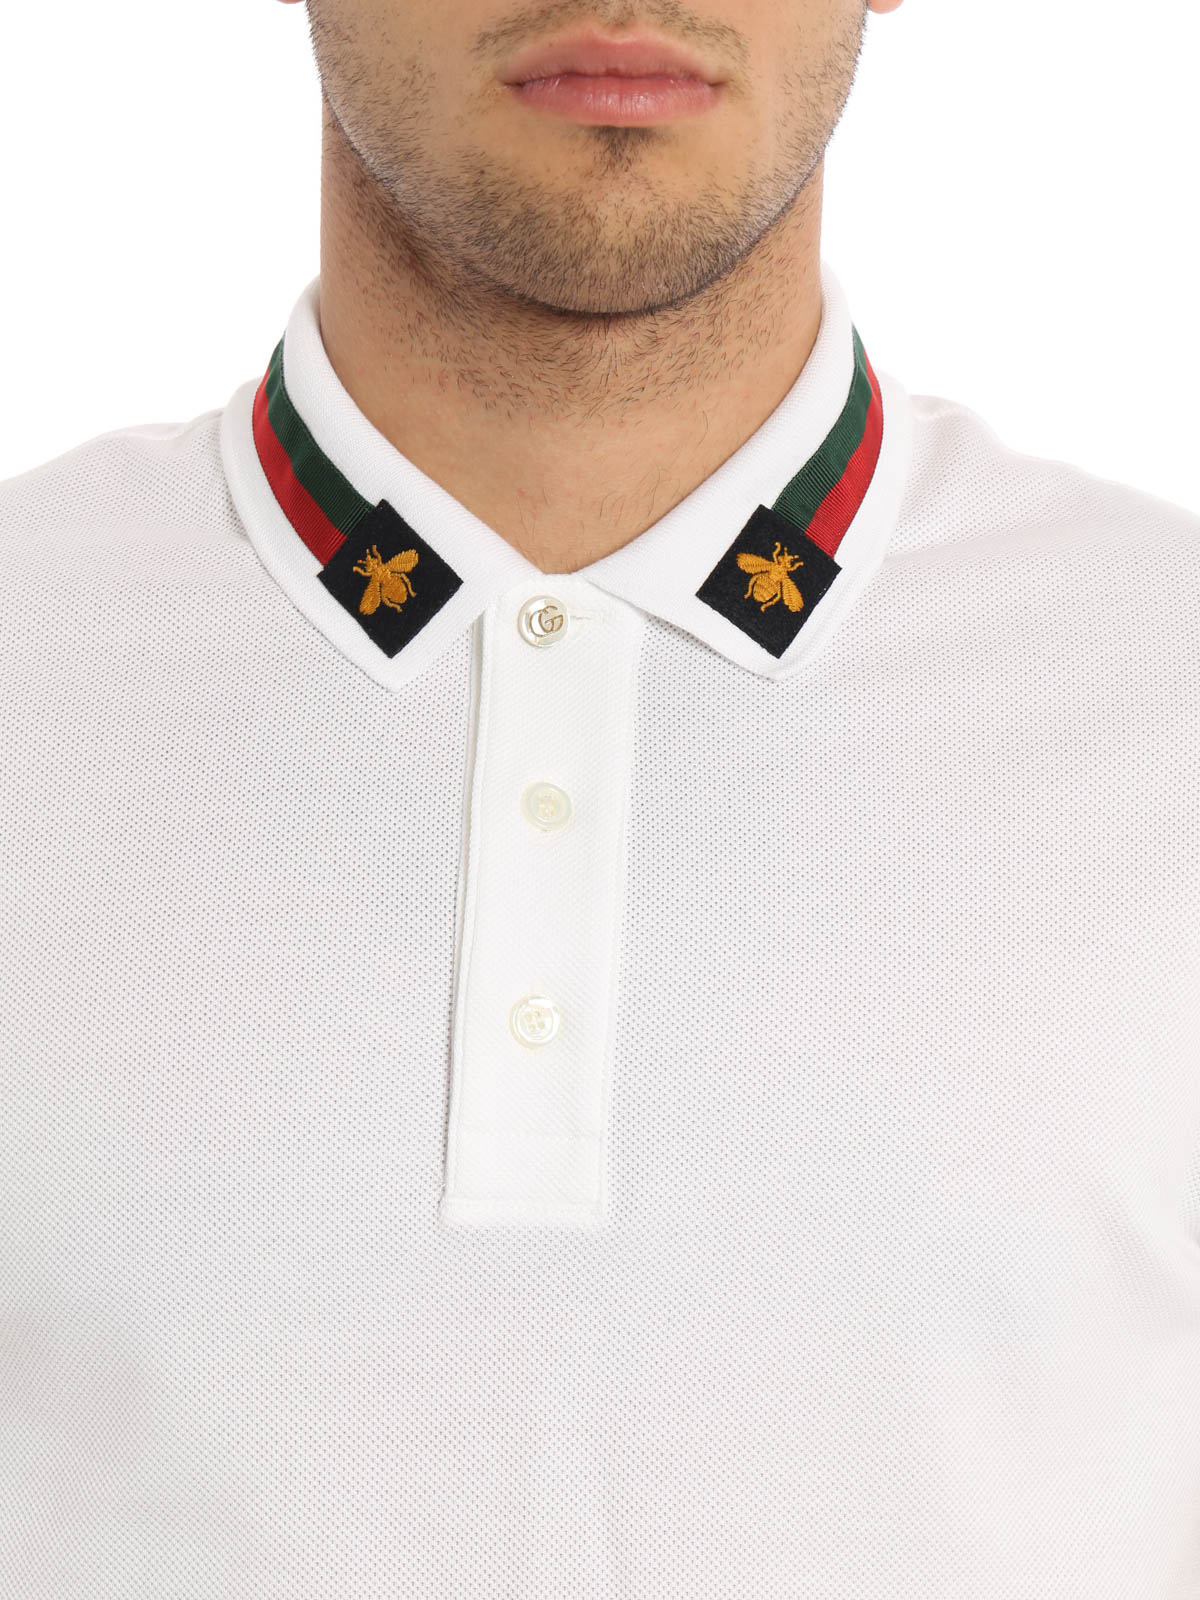 gucci polo. gucci buy online web detail and bees polo shirt